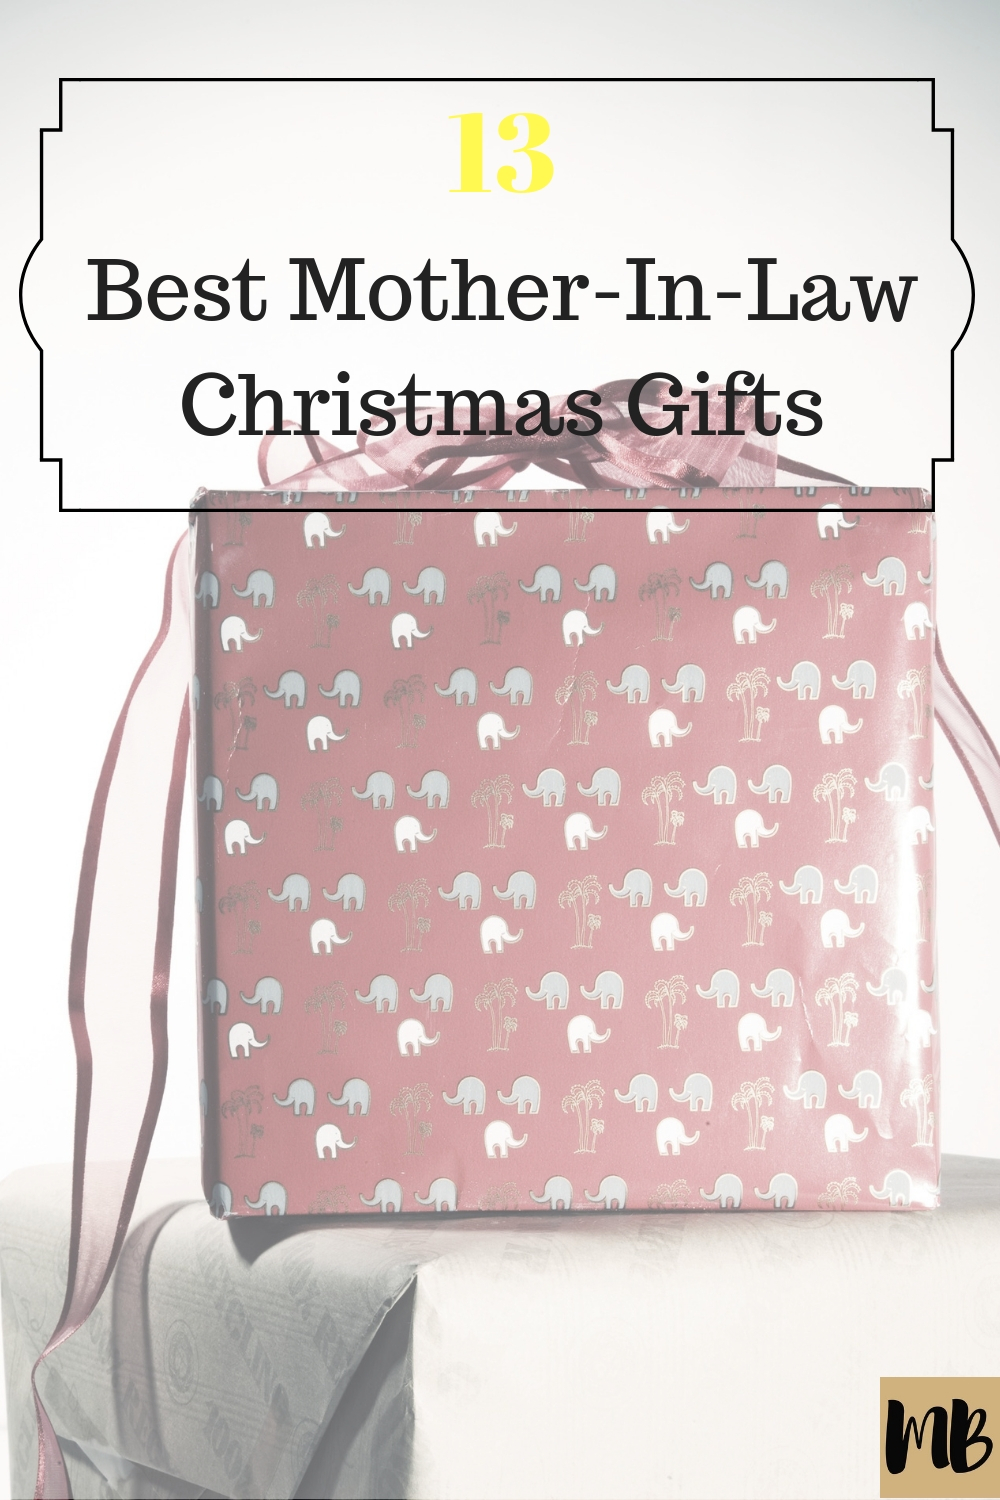 Best mother in law christmas gifts holiday  sc 1 st  Millennial Boss : best christmas gifts for mothers - medton.org